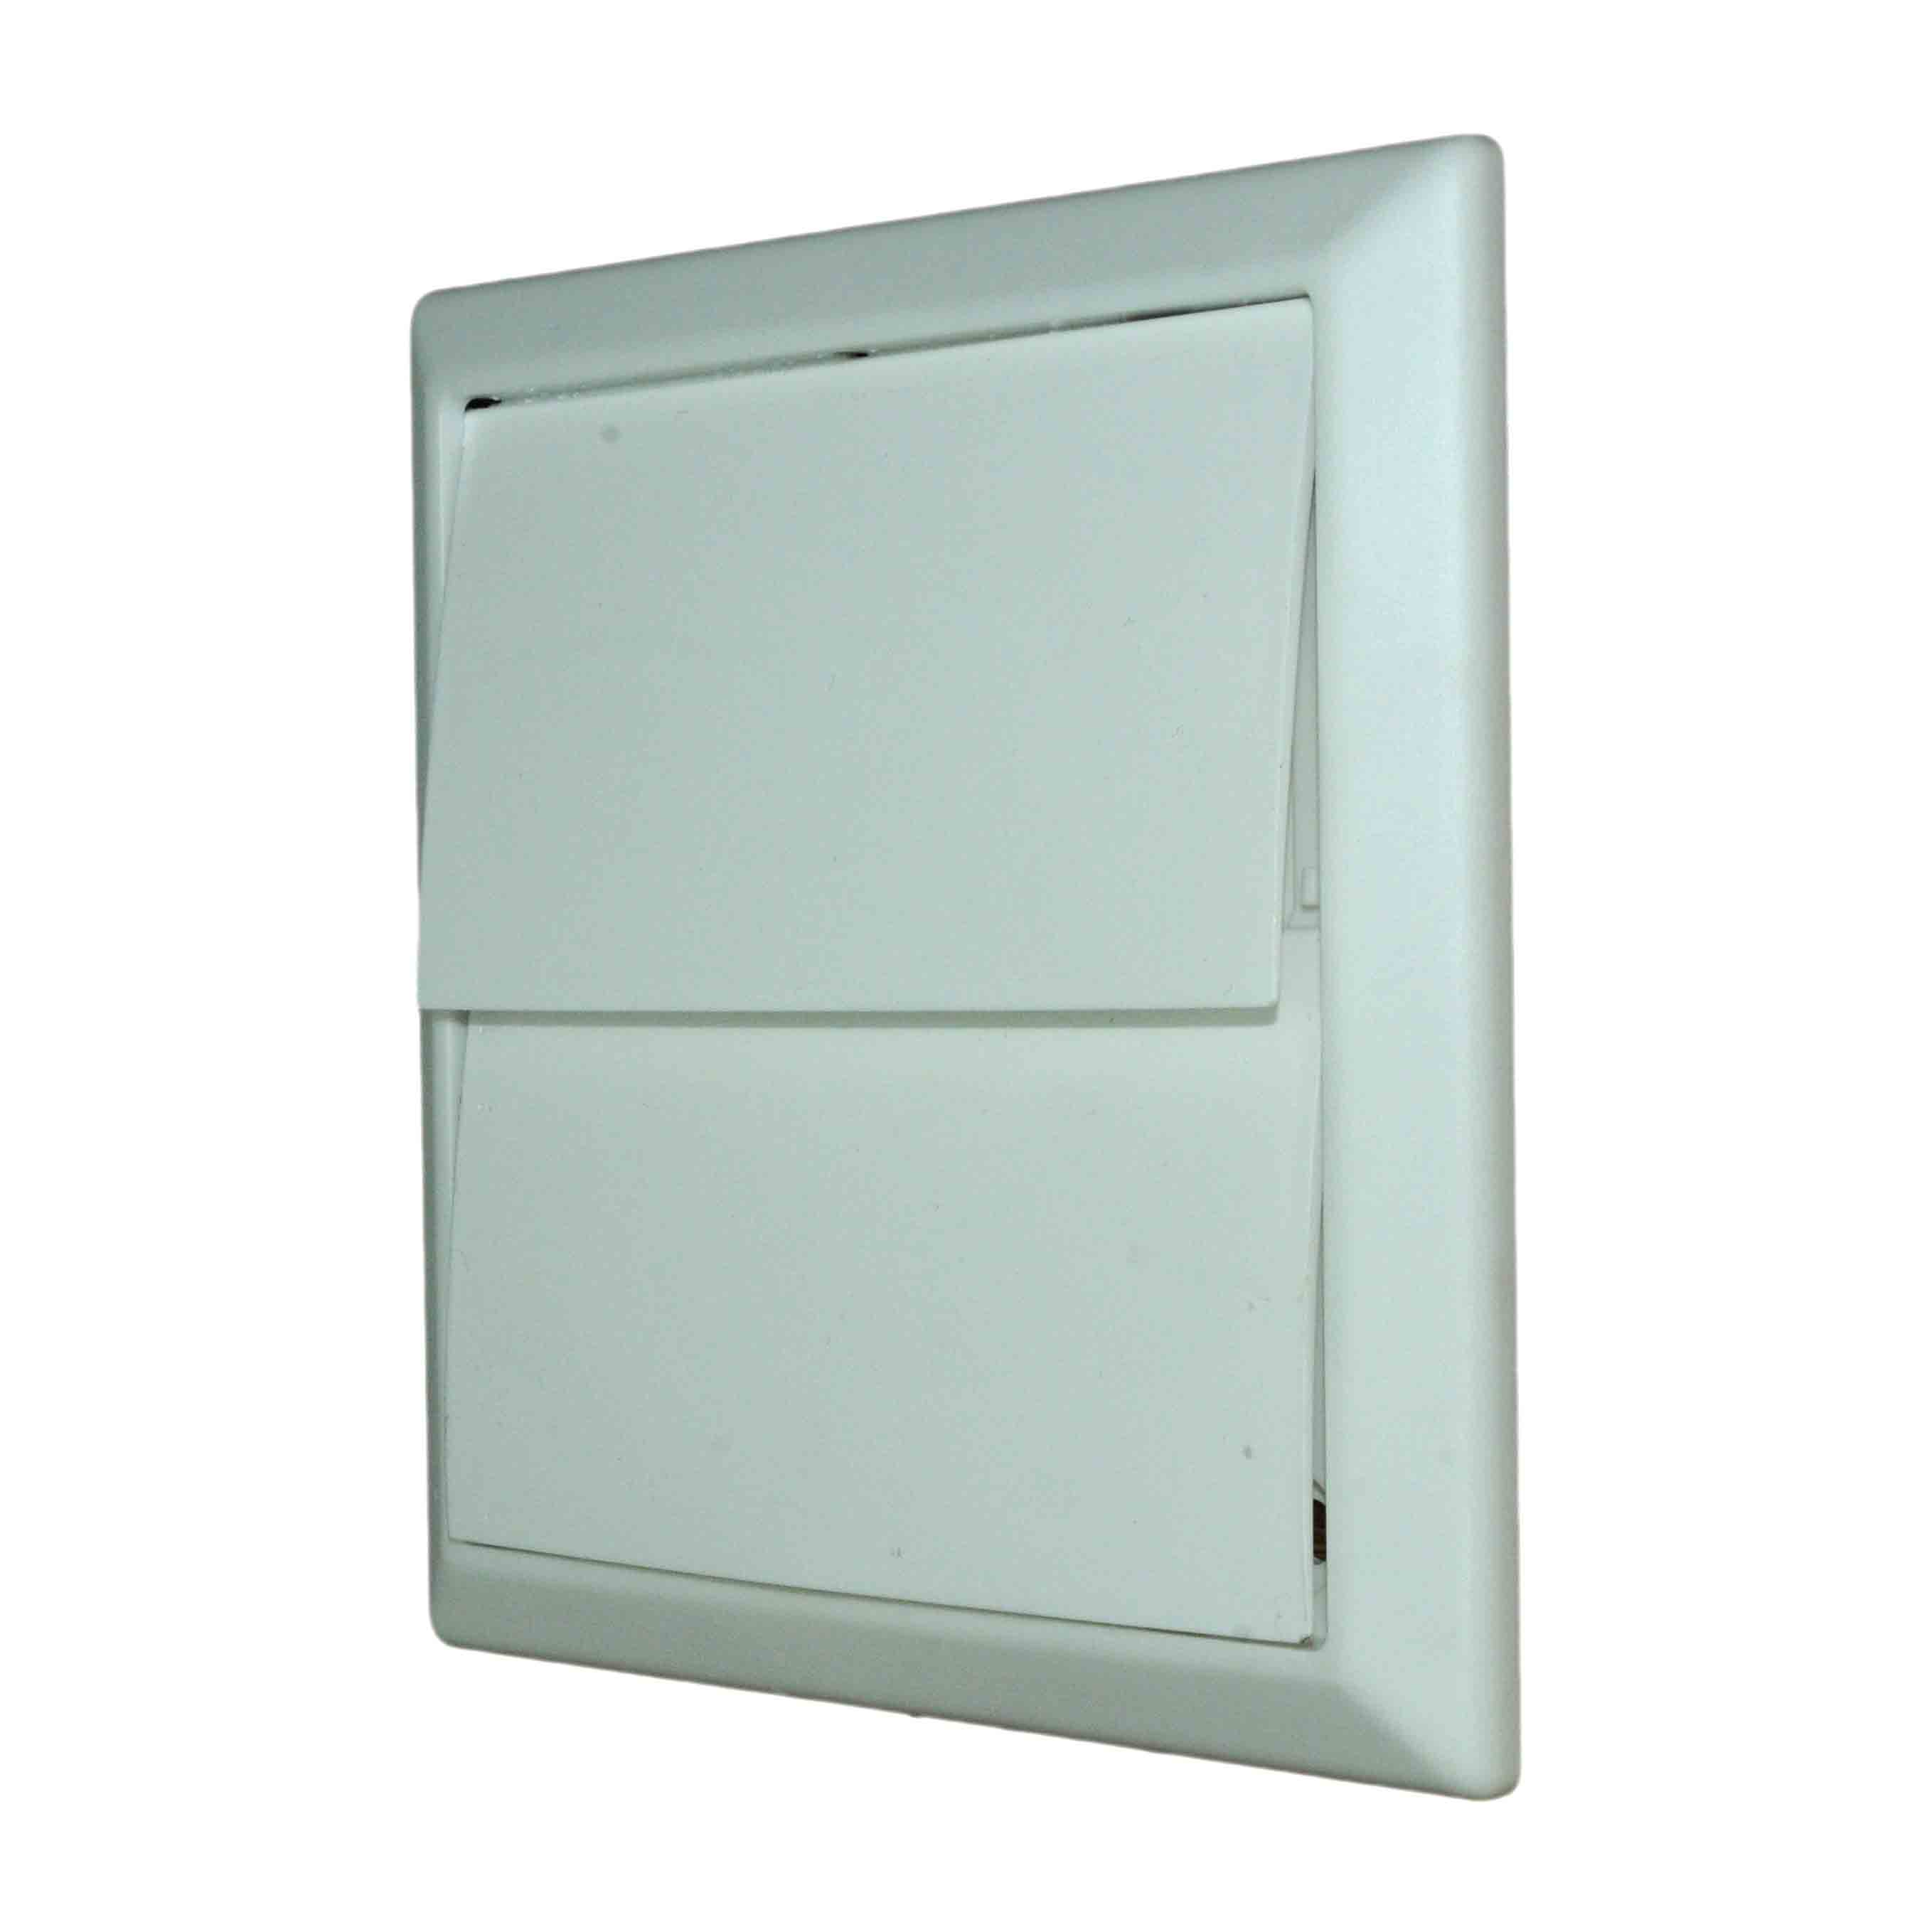 NVA 6900W 150mm Whi Round Wall Outlet